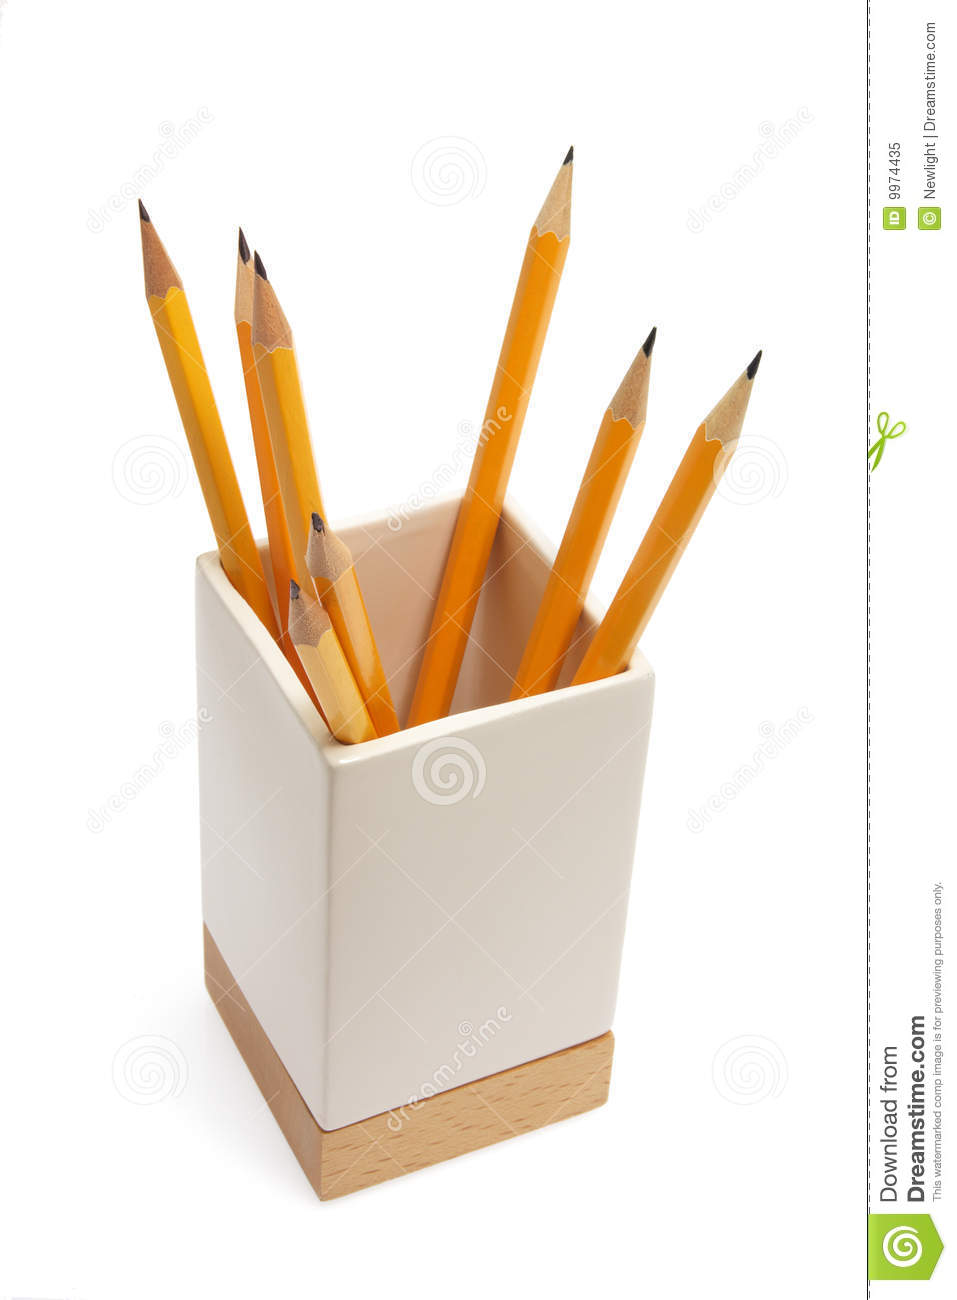 Pencil Holder Royalty Free Stock Photo Image 9974435